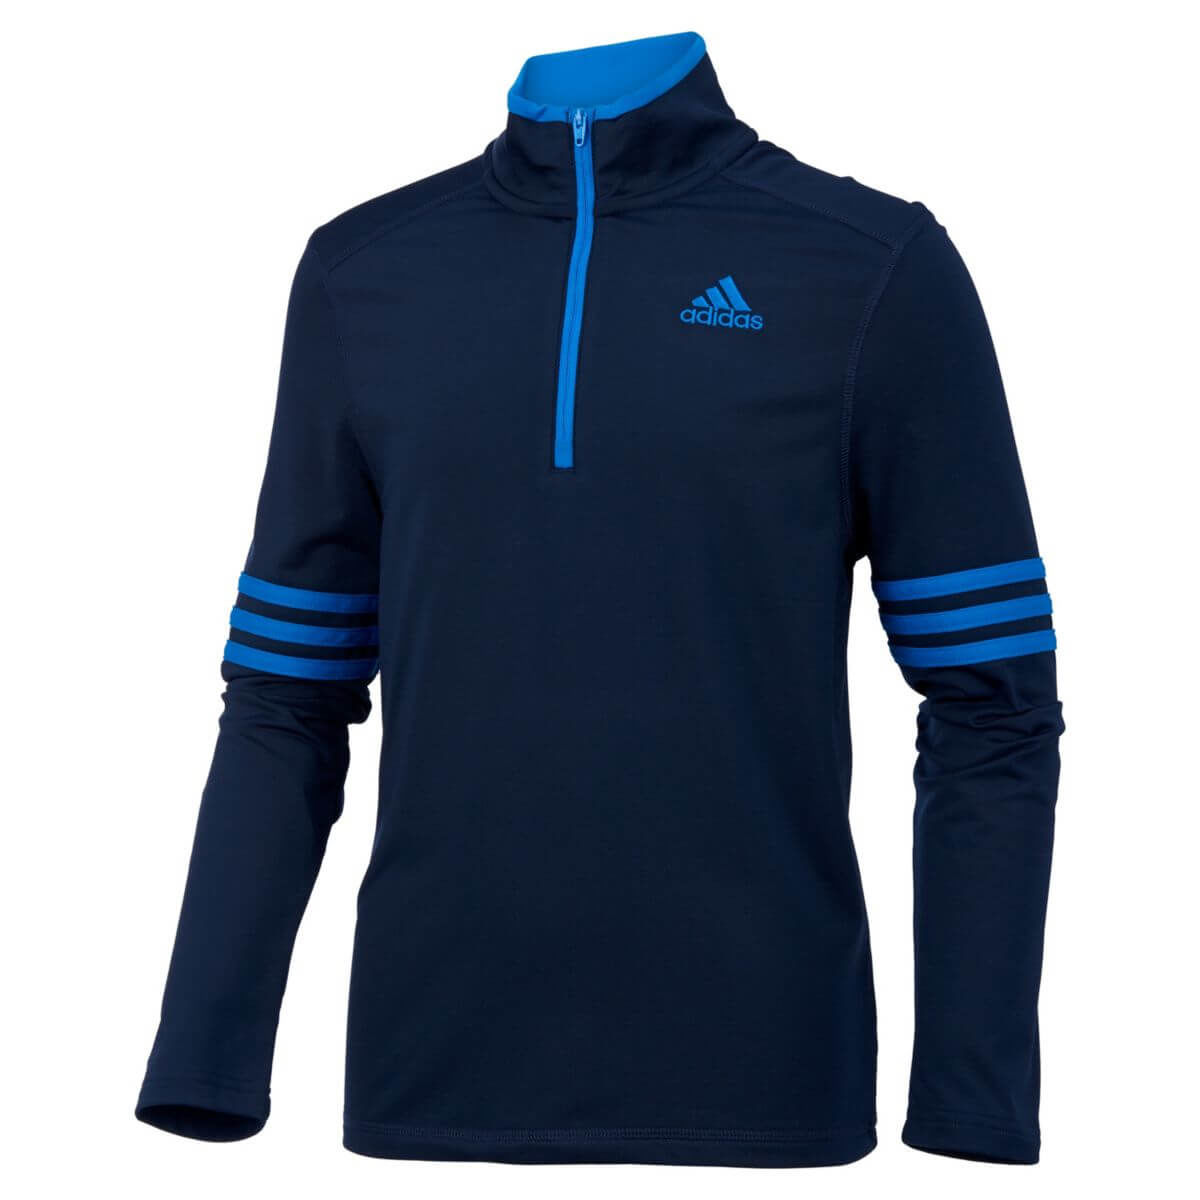 adidas Pursuit Boys Half Zip Top